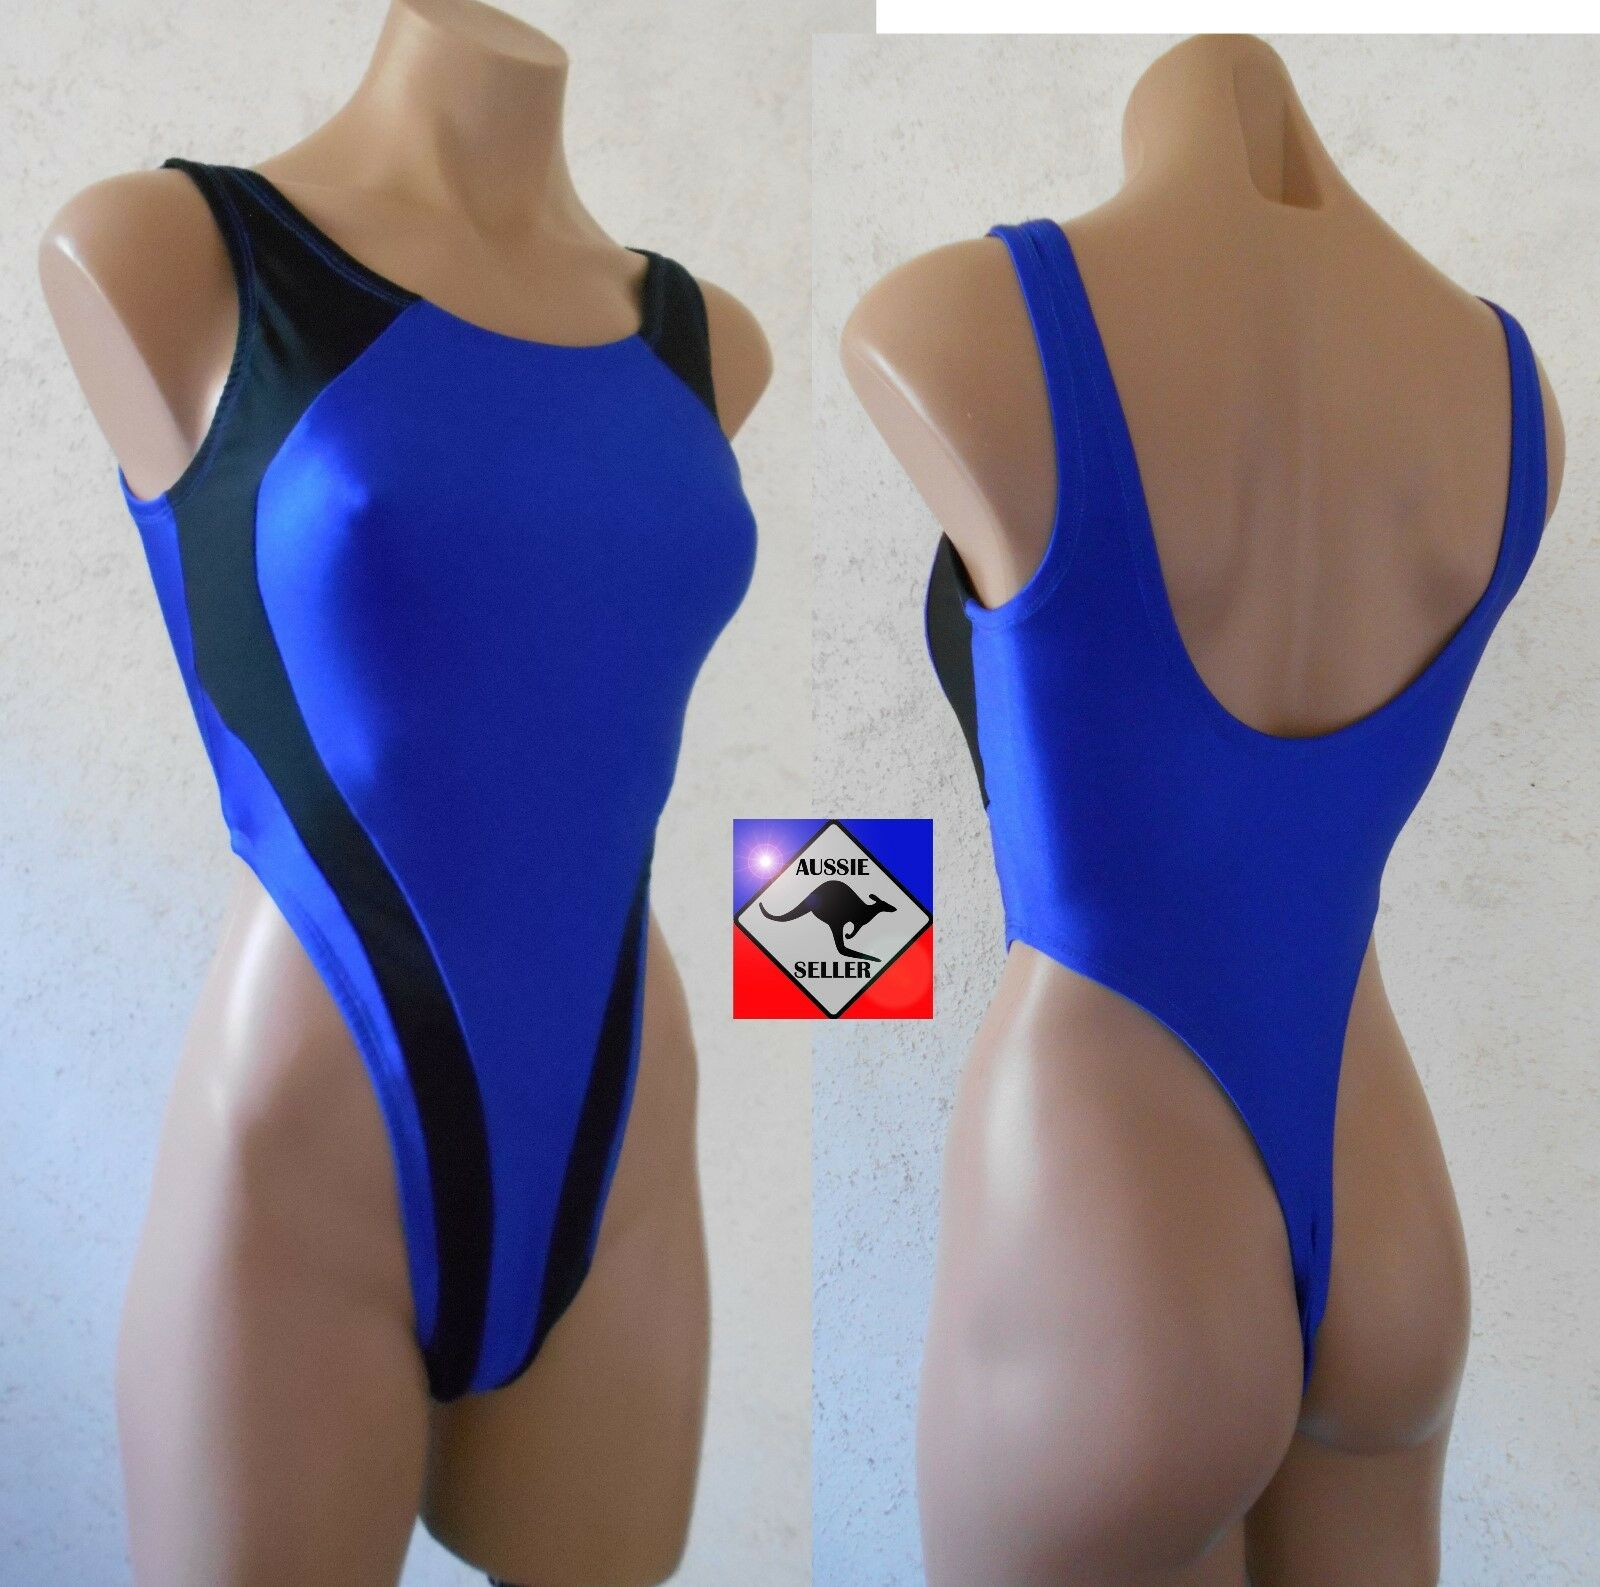 Ladies Blue & Black Tank Thong Leotard. 80's Retro.Sexy High Cut.Aerobics.Dance